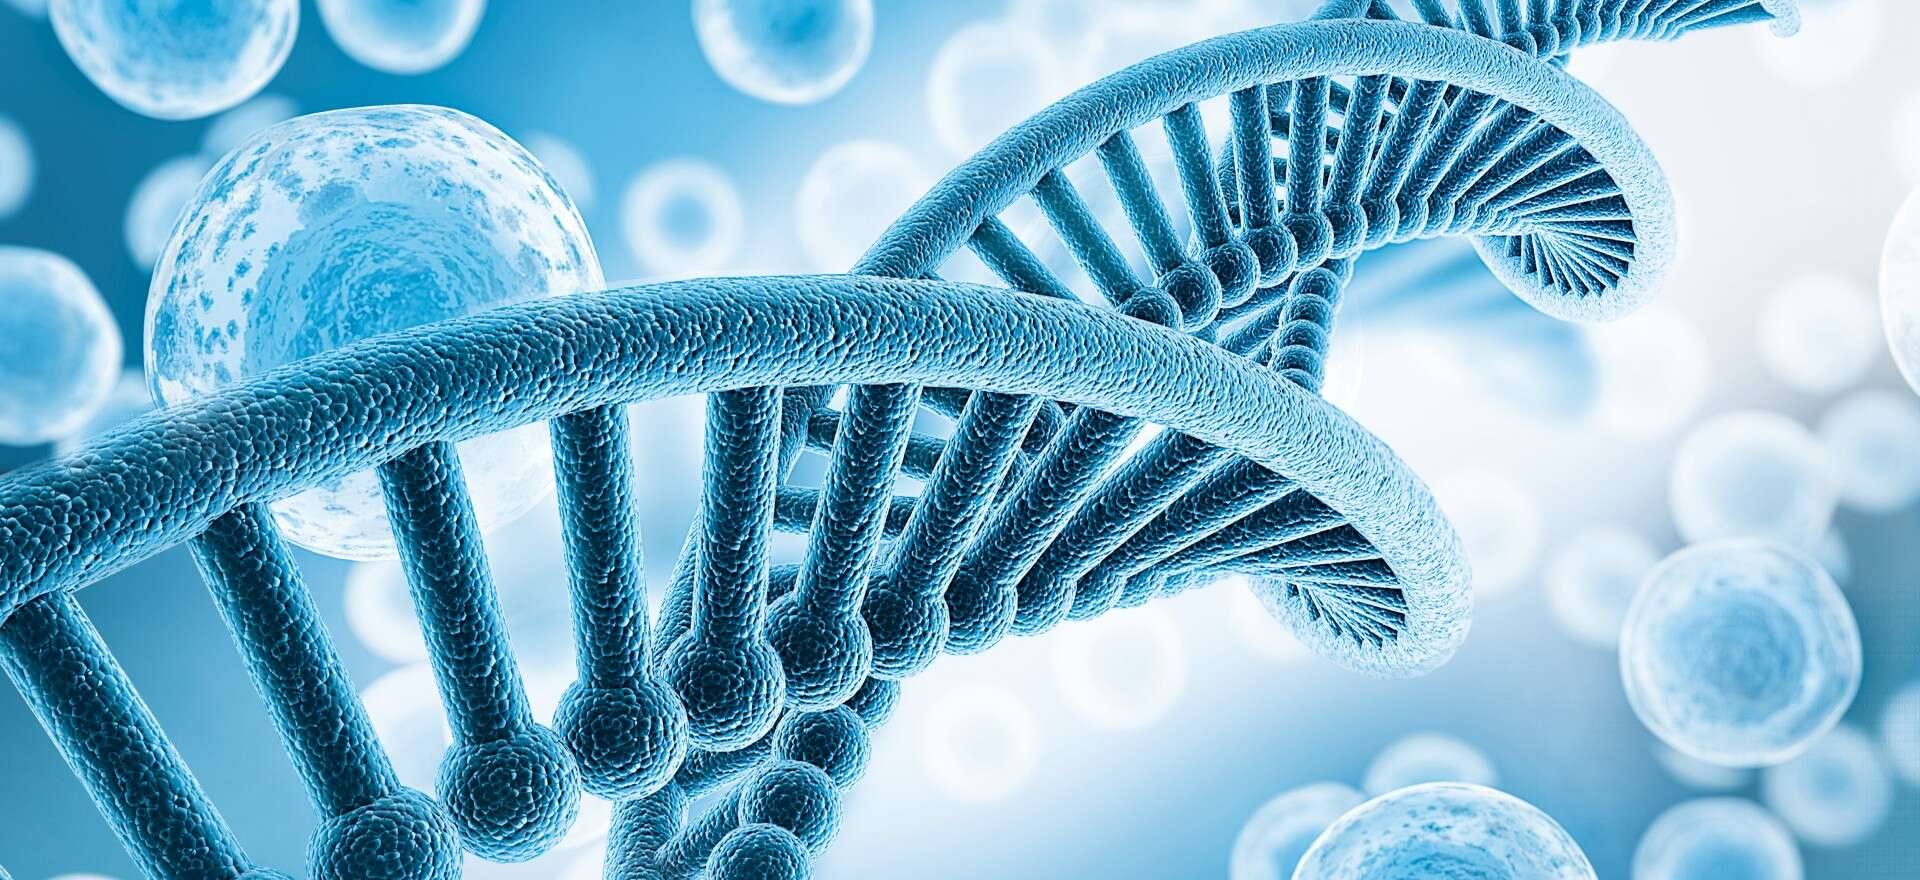 Life sciences: DNA